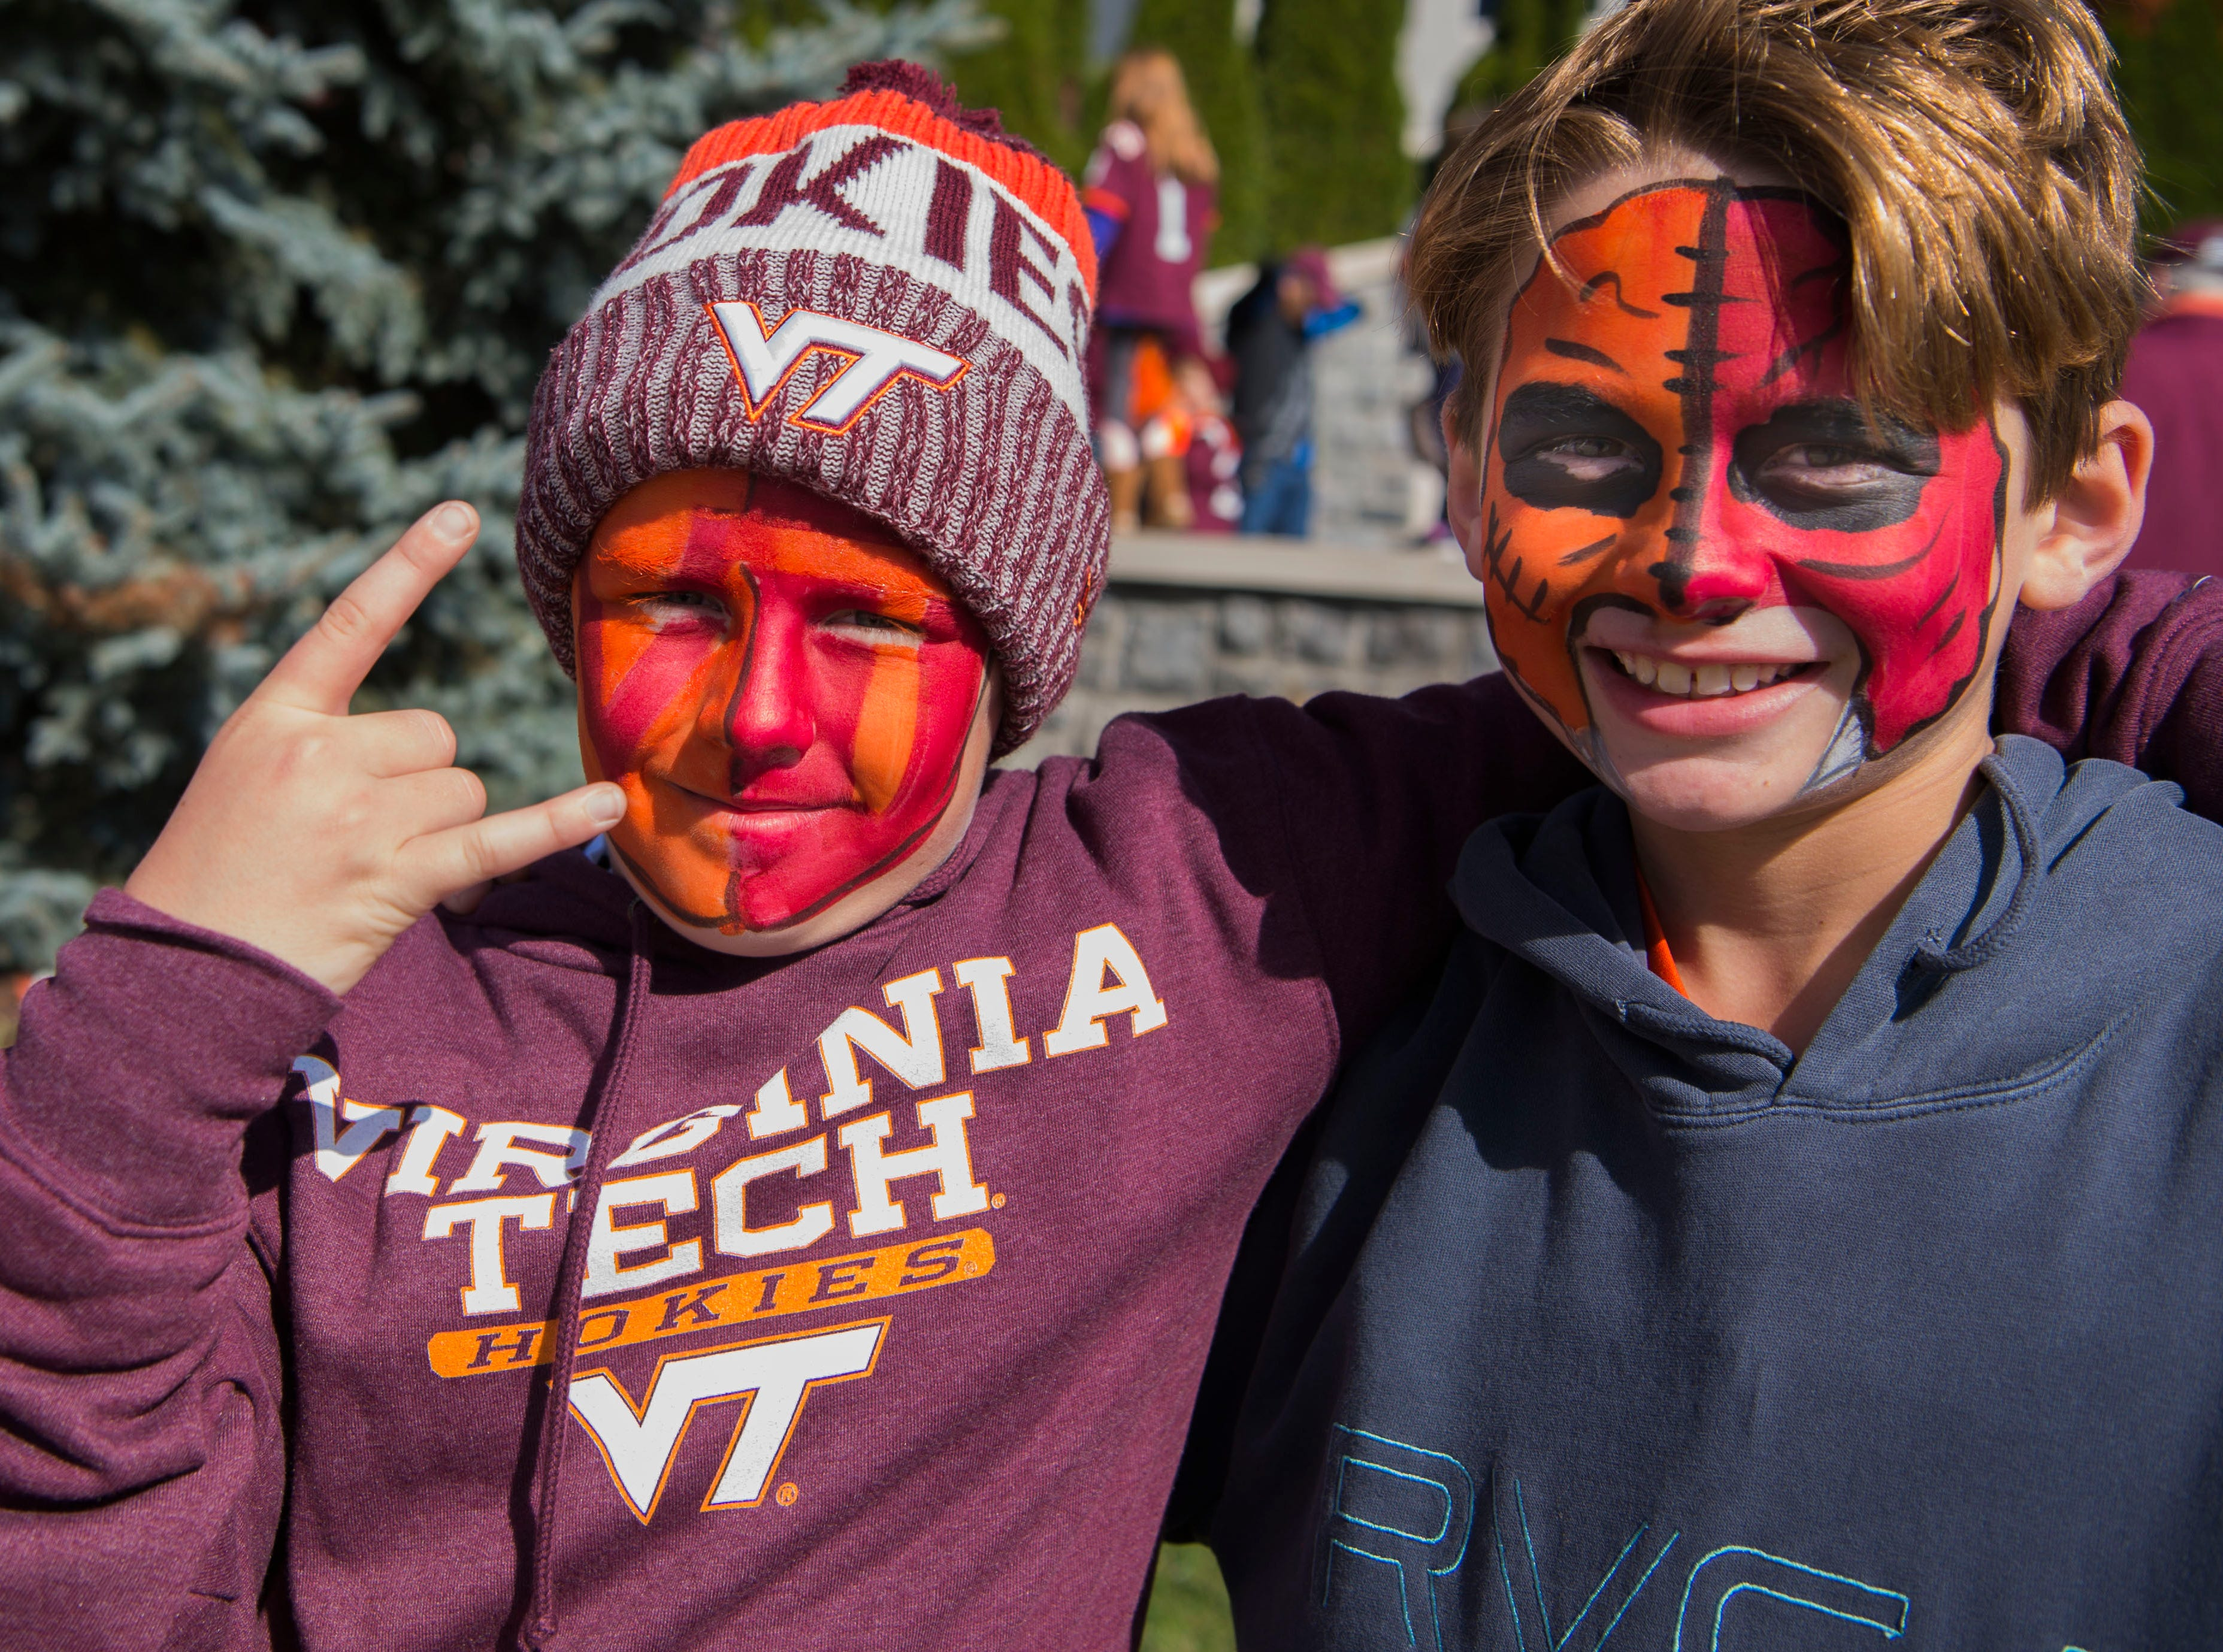 Week 10: A pair of Virginia Tech Hokies fans pose for a photo prior to the game against the Boston College Eagles.